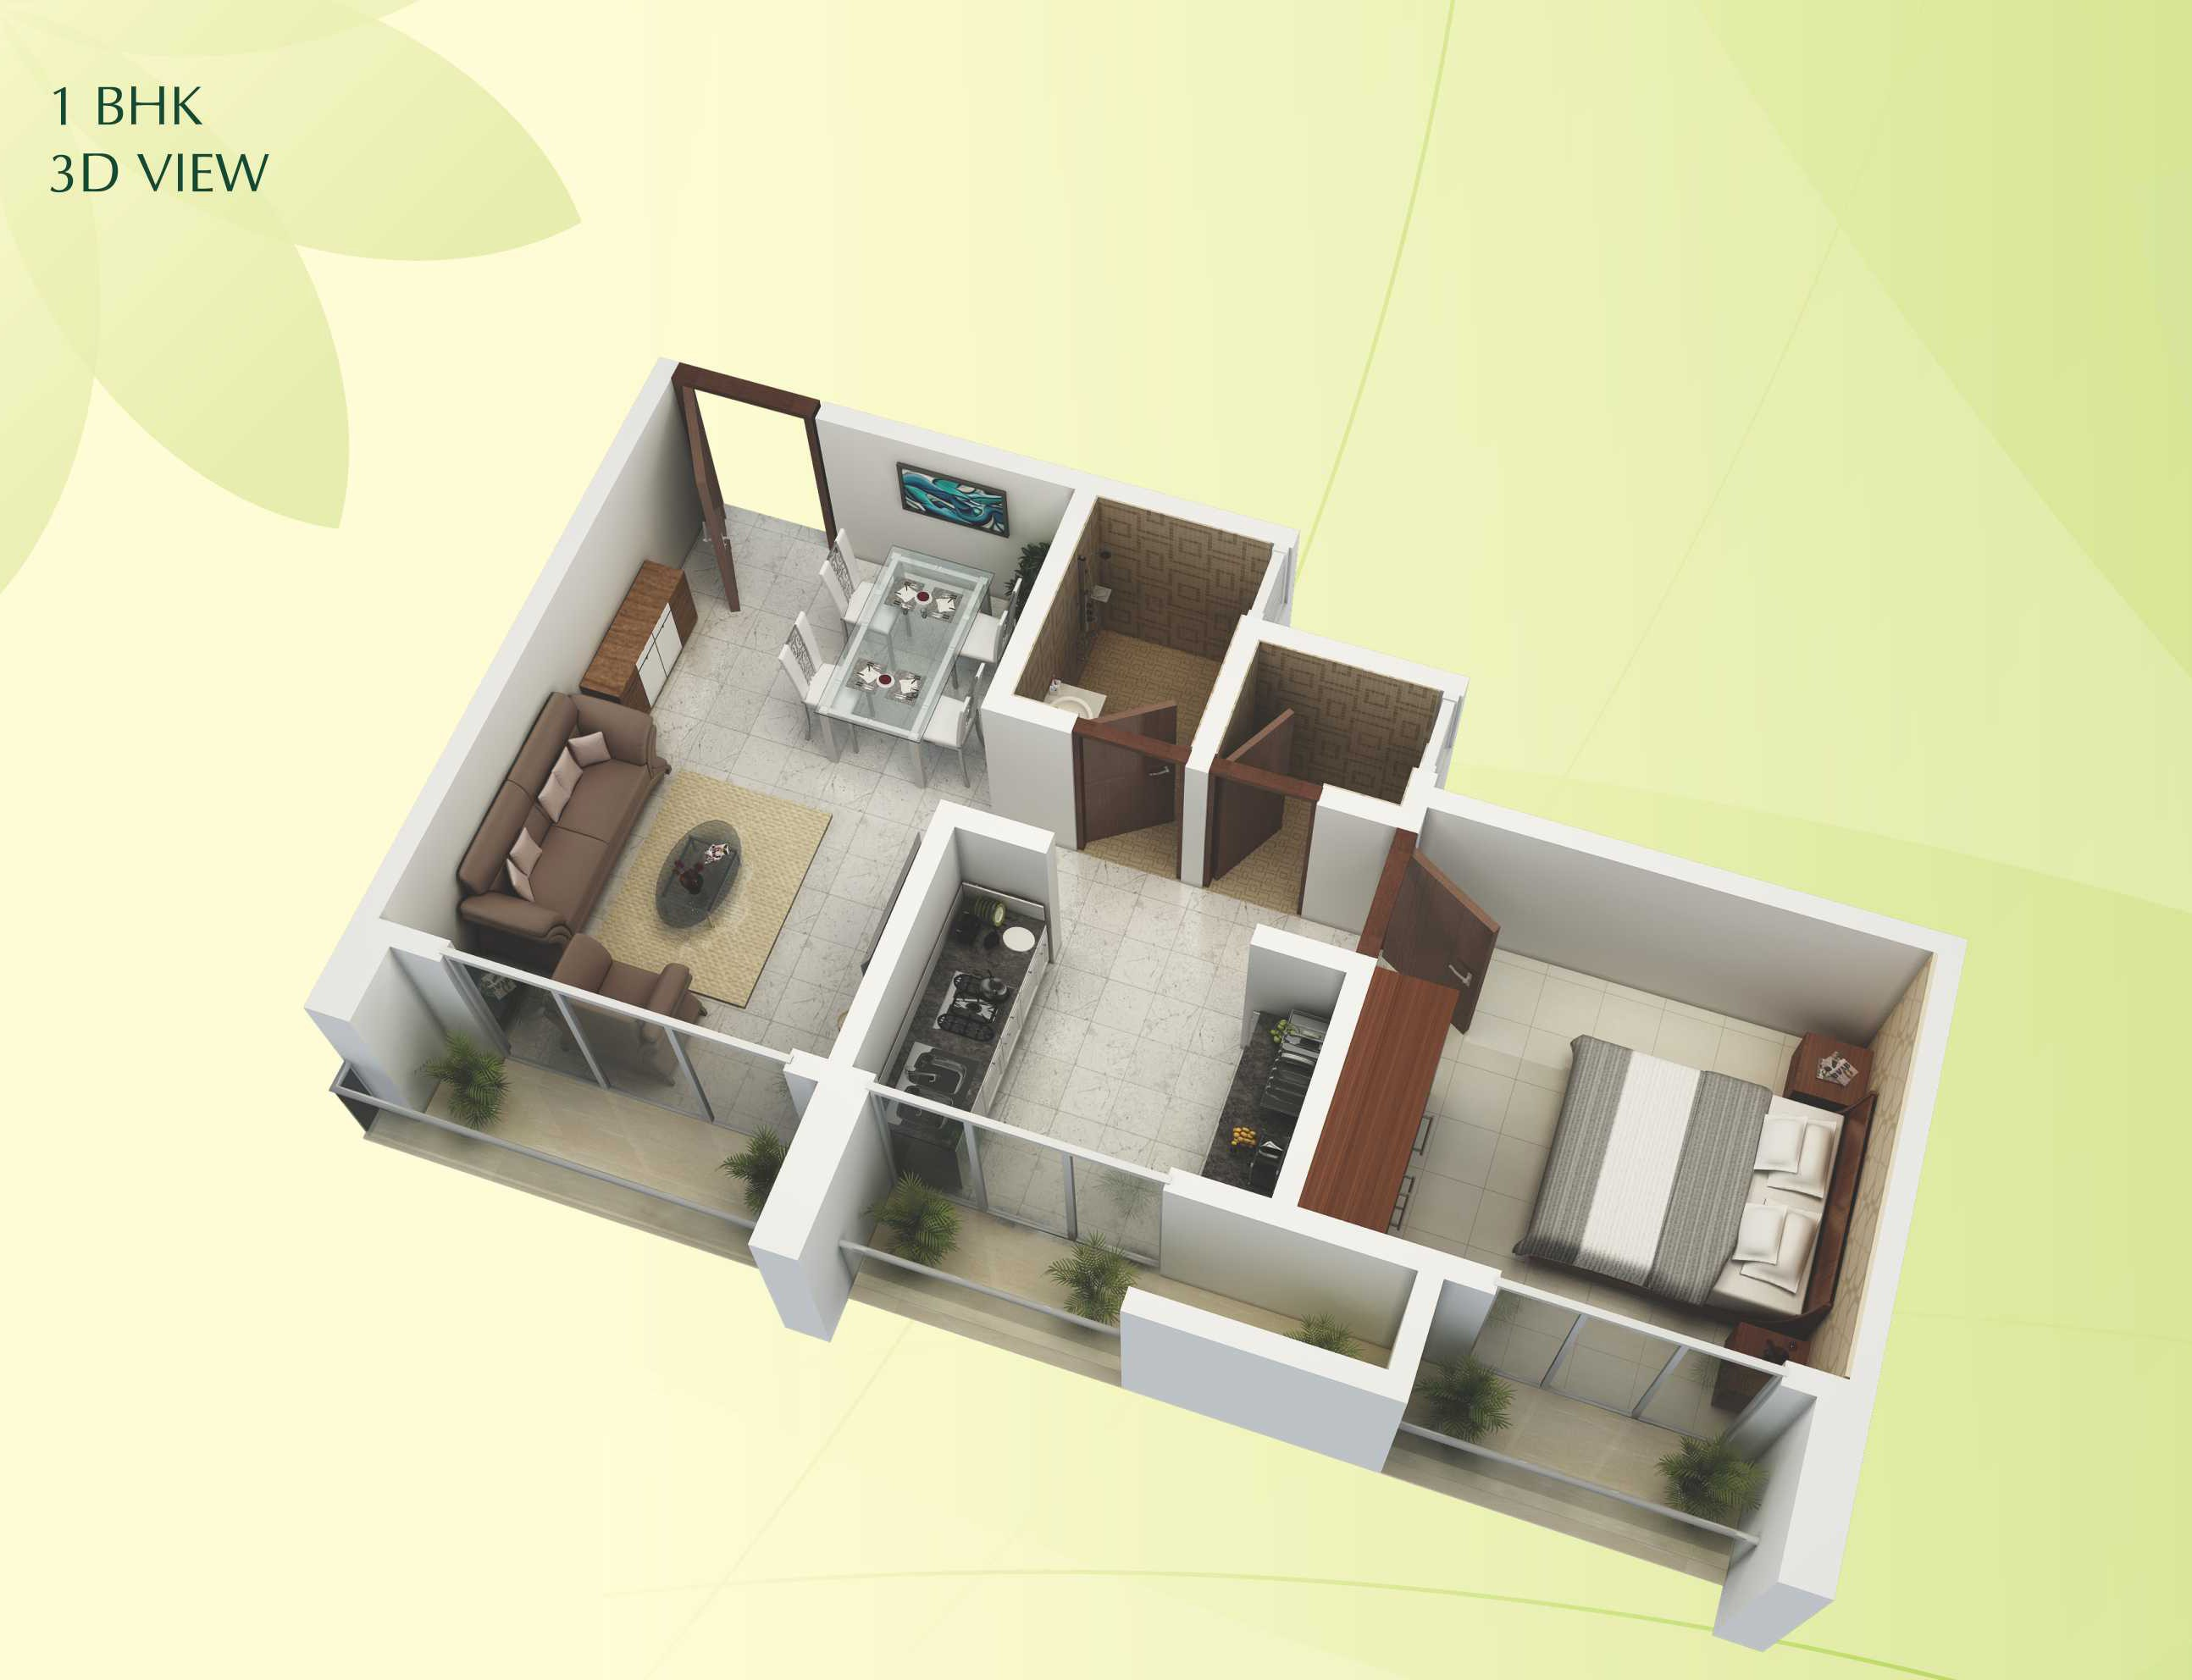 Flats for rent in Patna-1bhk-sample